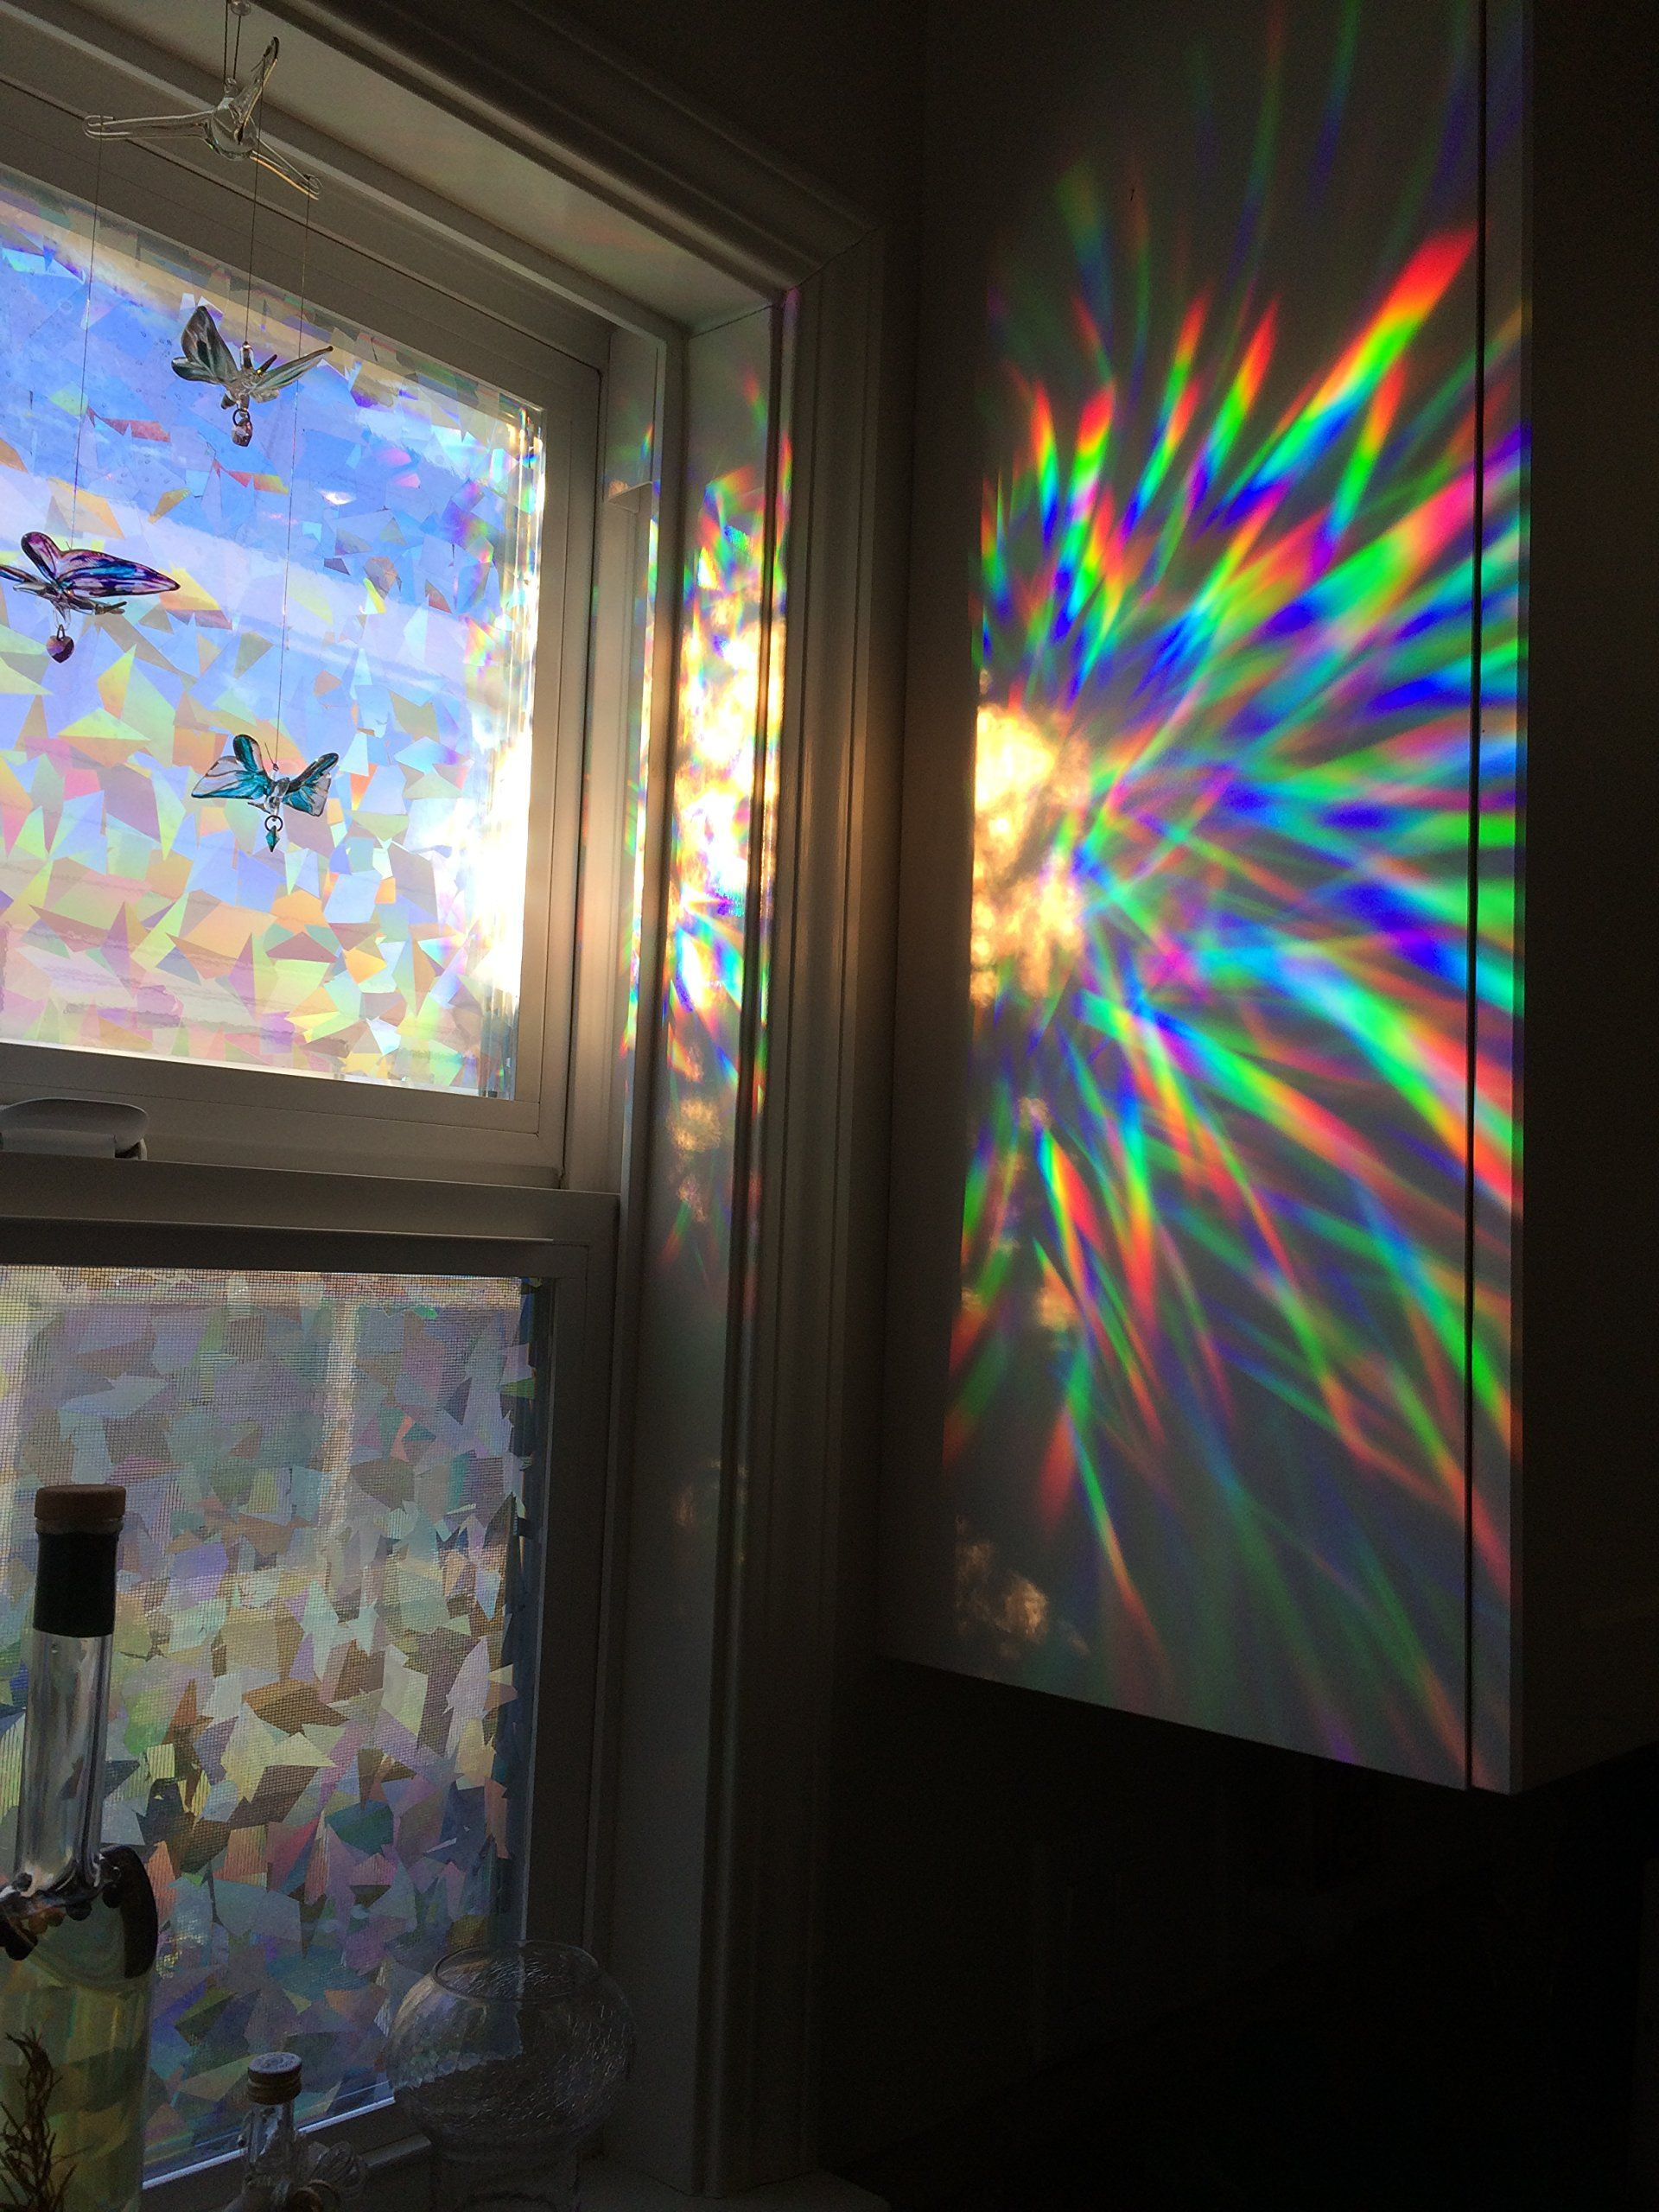 Beach theme decoration stained glass window panels arts crafts - Decorative Window Film Holographic Prismatic Etched Glass Effect Fill Your House With Rainbow Light X Panels